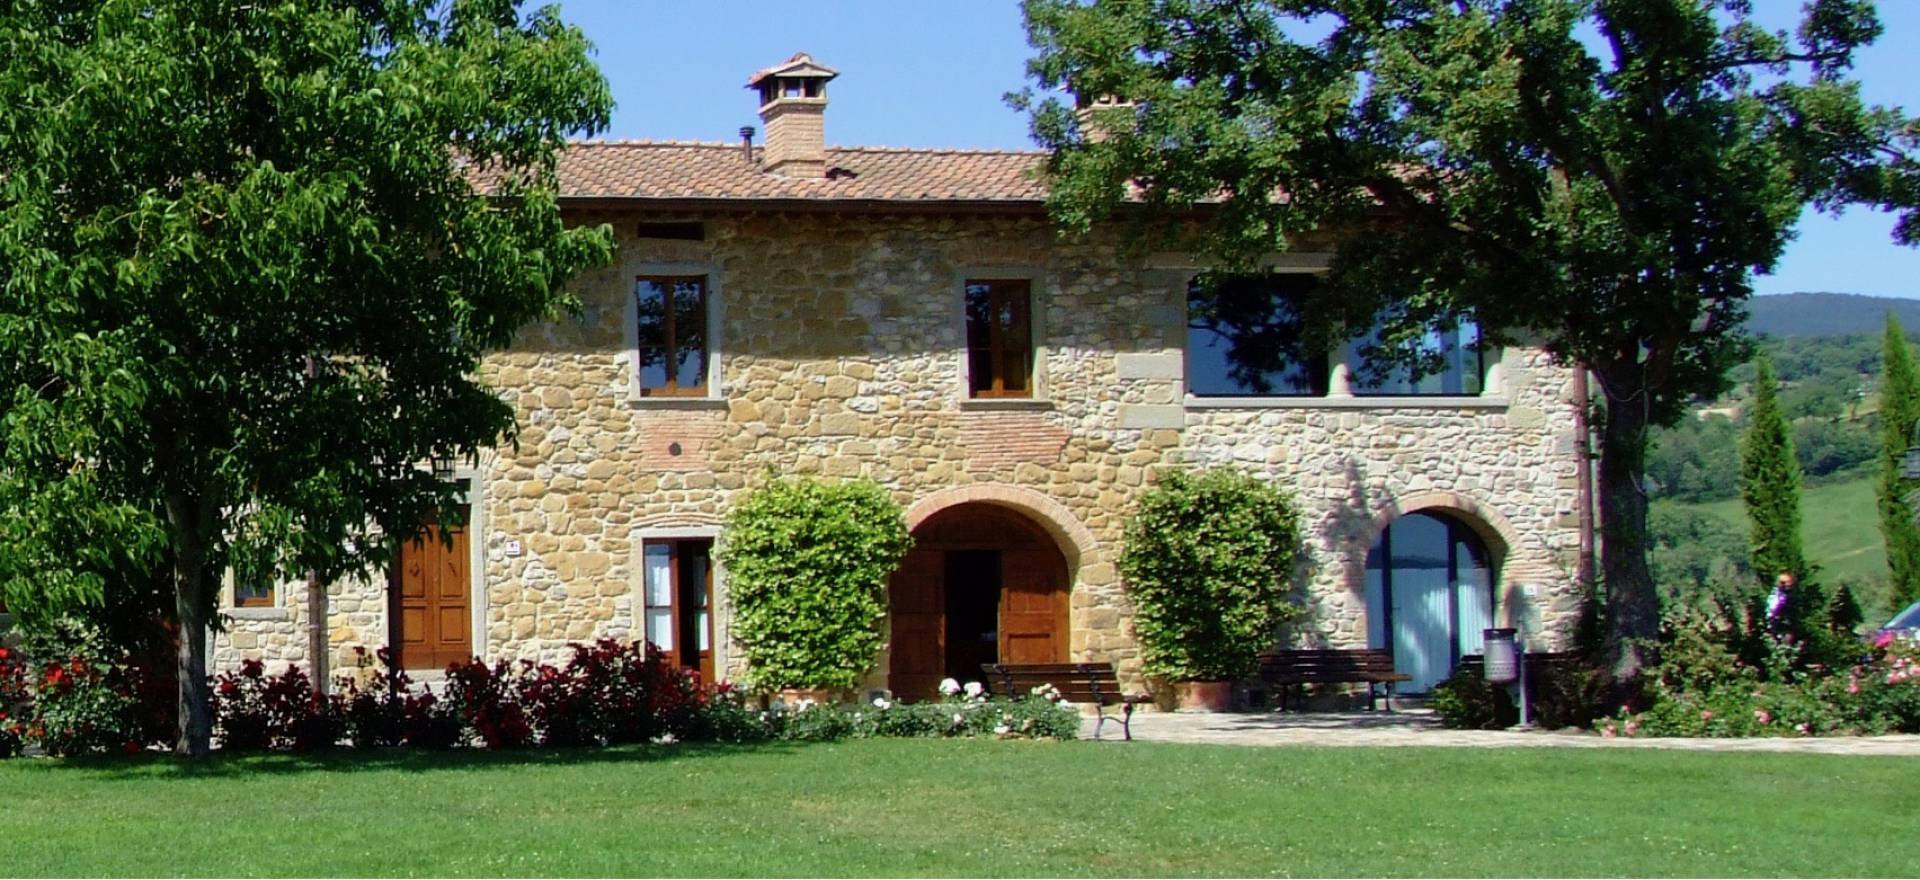 Agriturismo Tuscany Beautiful Agriturismo - Farmhouse in Tuscany with amazing view!